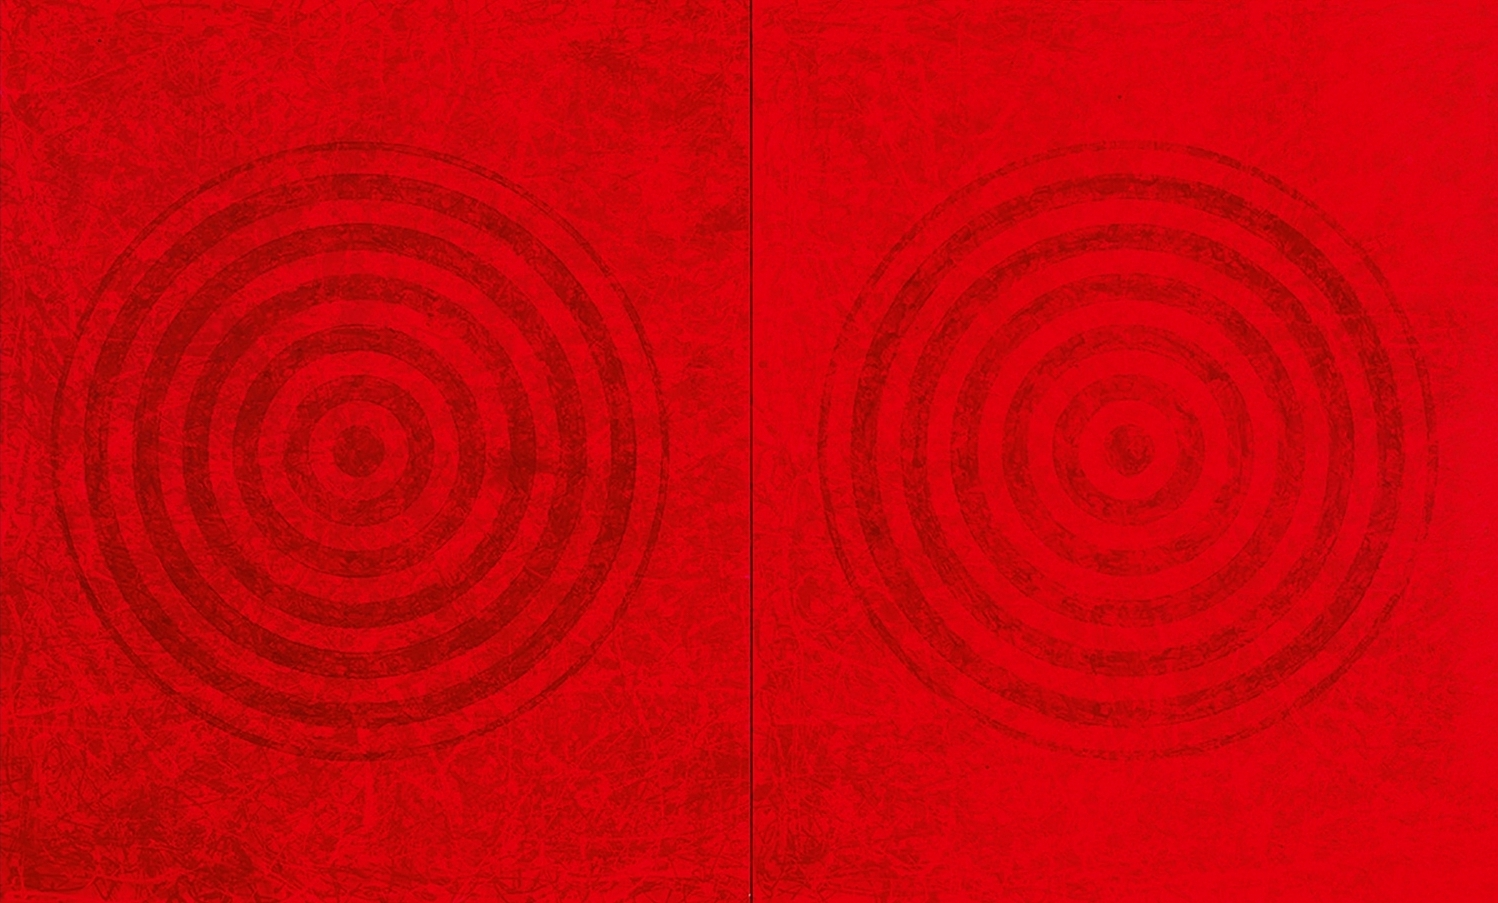 J. Steven Manolis, Redworld-Concentric, 2016, 72 x 120 inches, 72.120.01, Red Abstract Art, Large Abstract Wall Art for sale at Manolis Projects Art Gallery, Miami, Fl